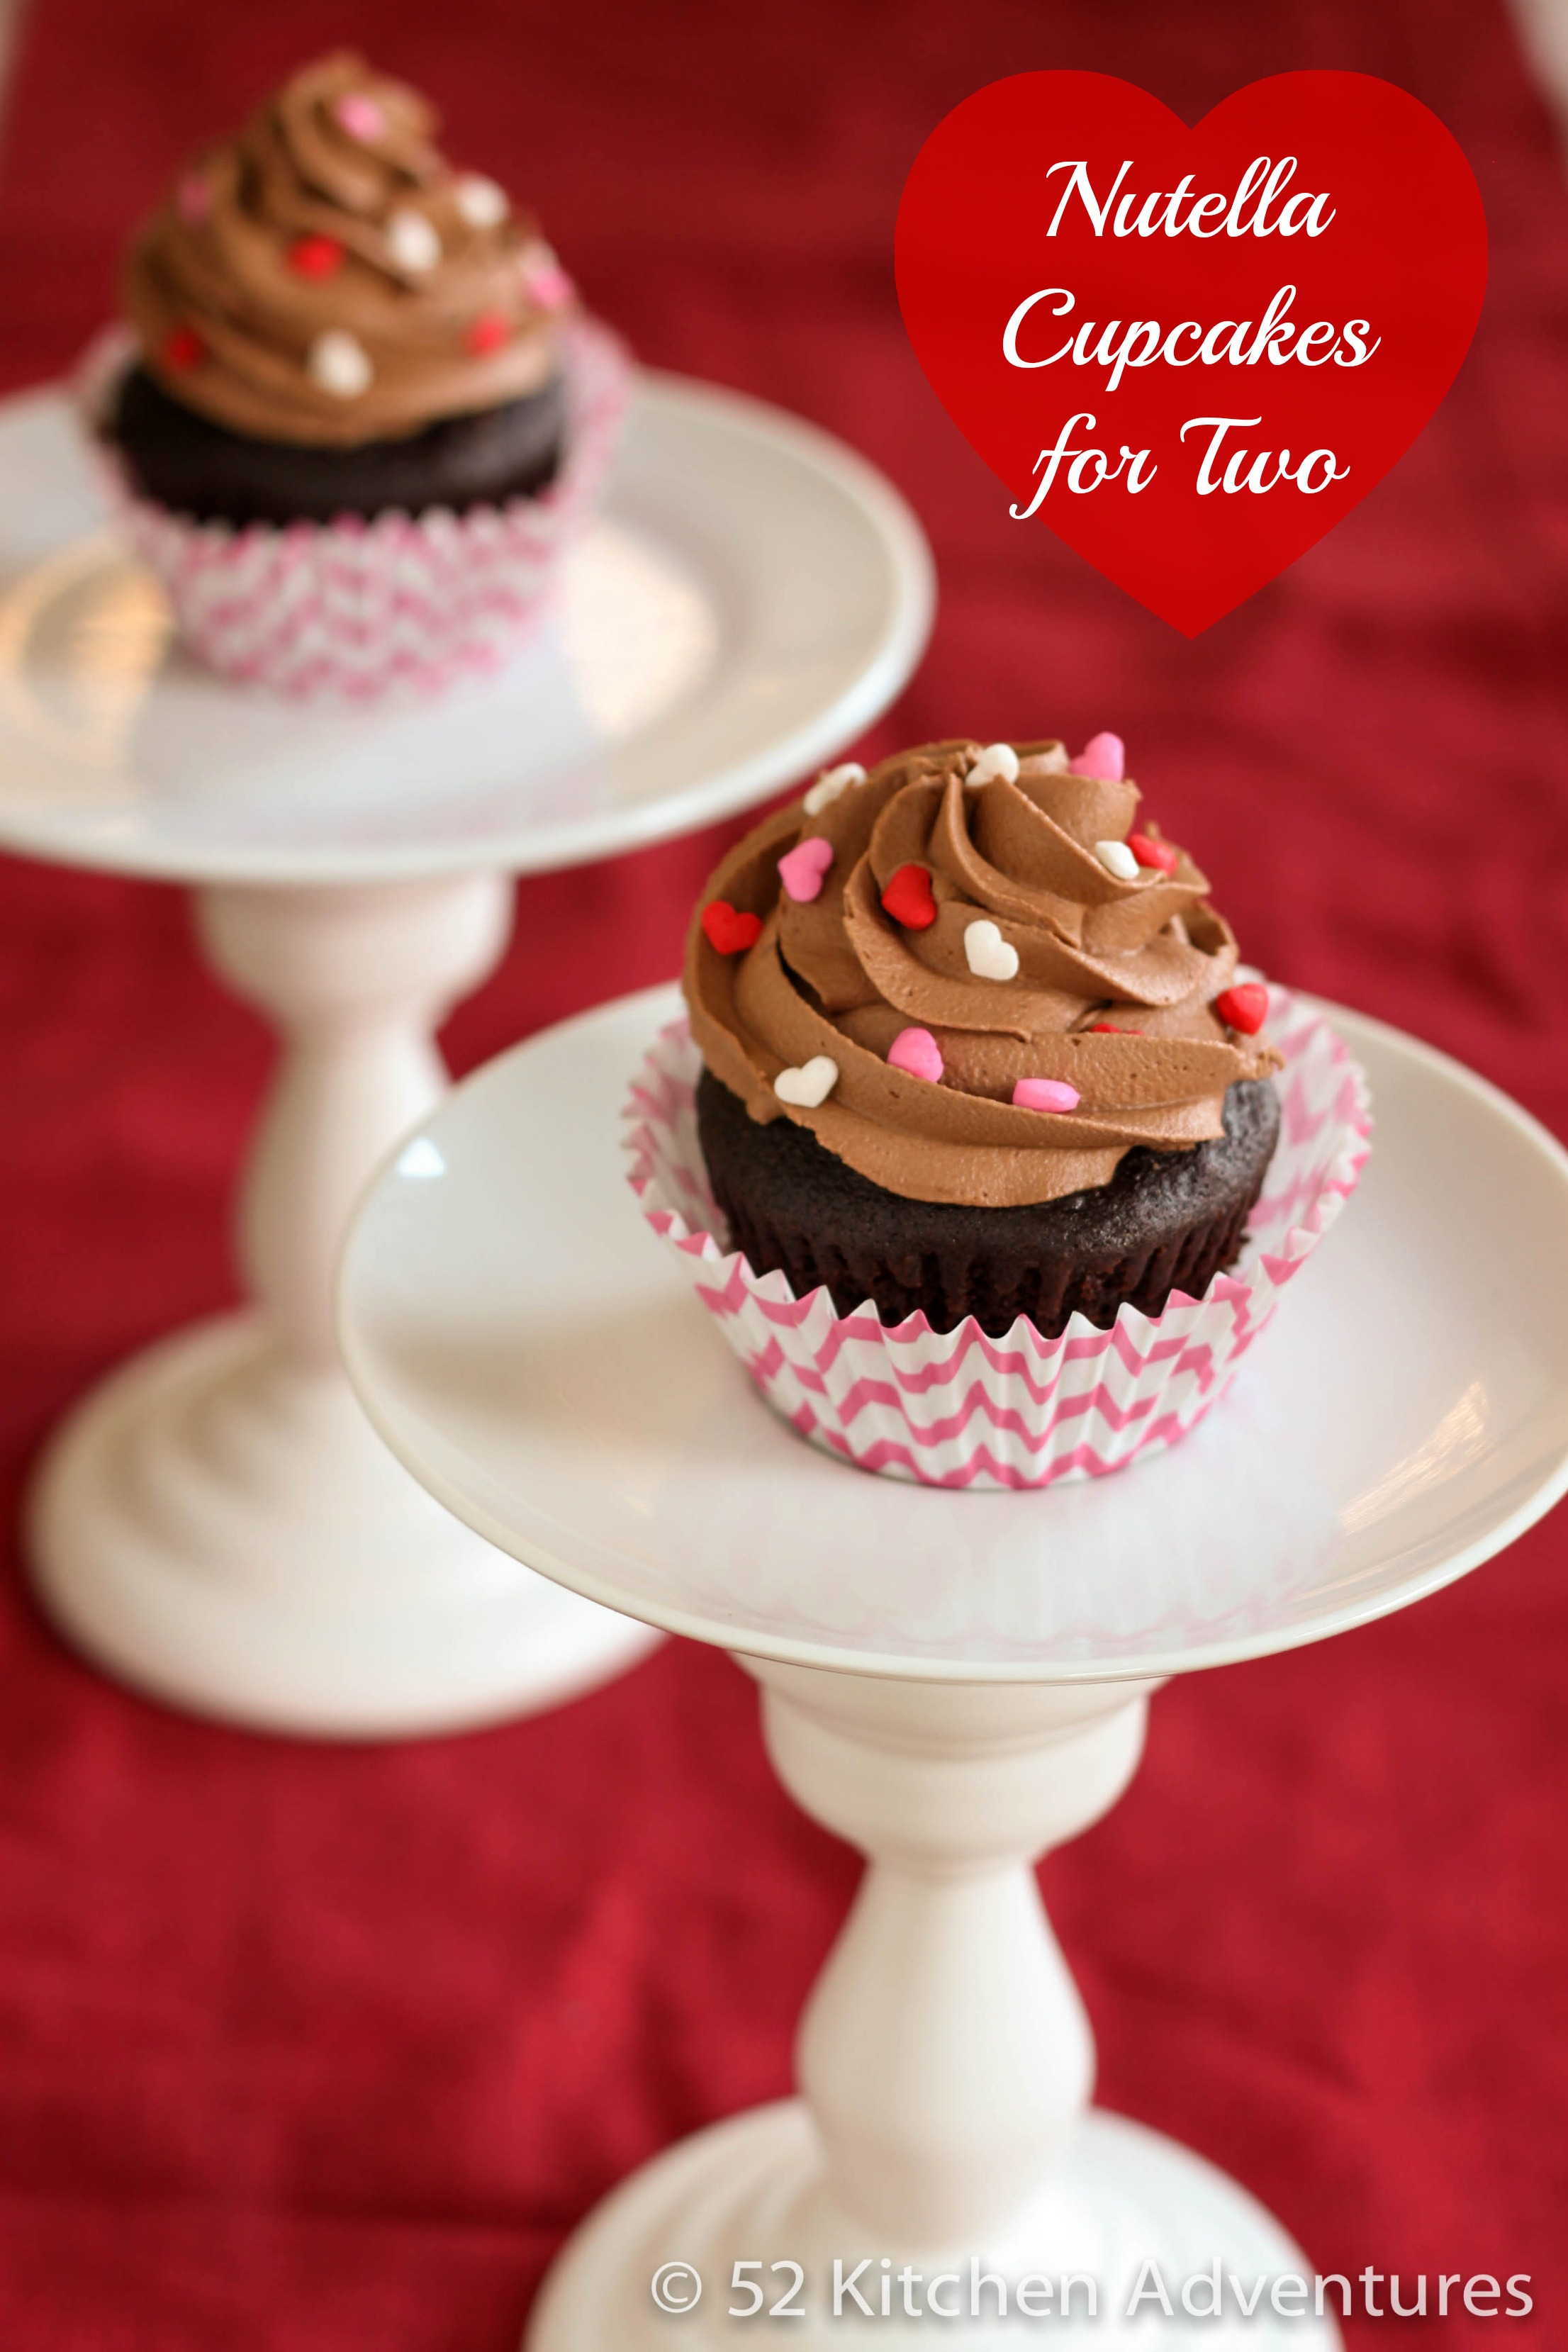 Nutella Cupcakes for 2